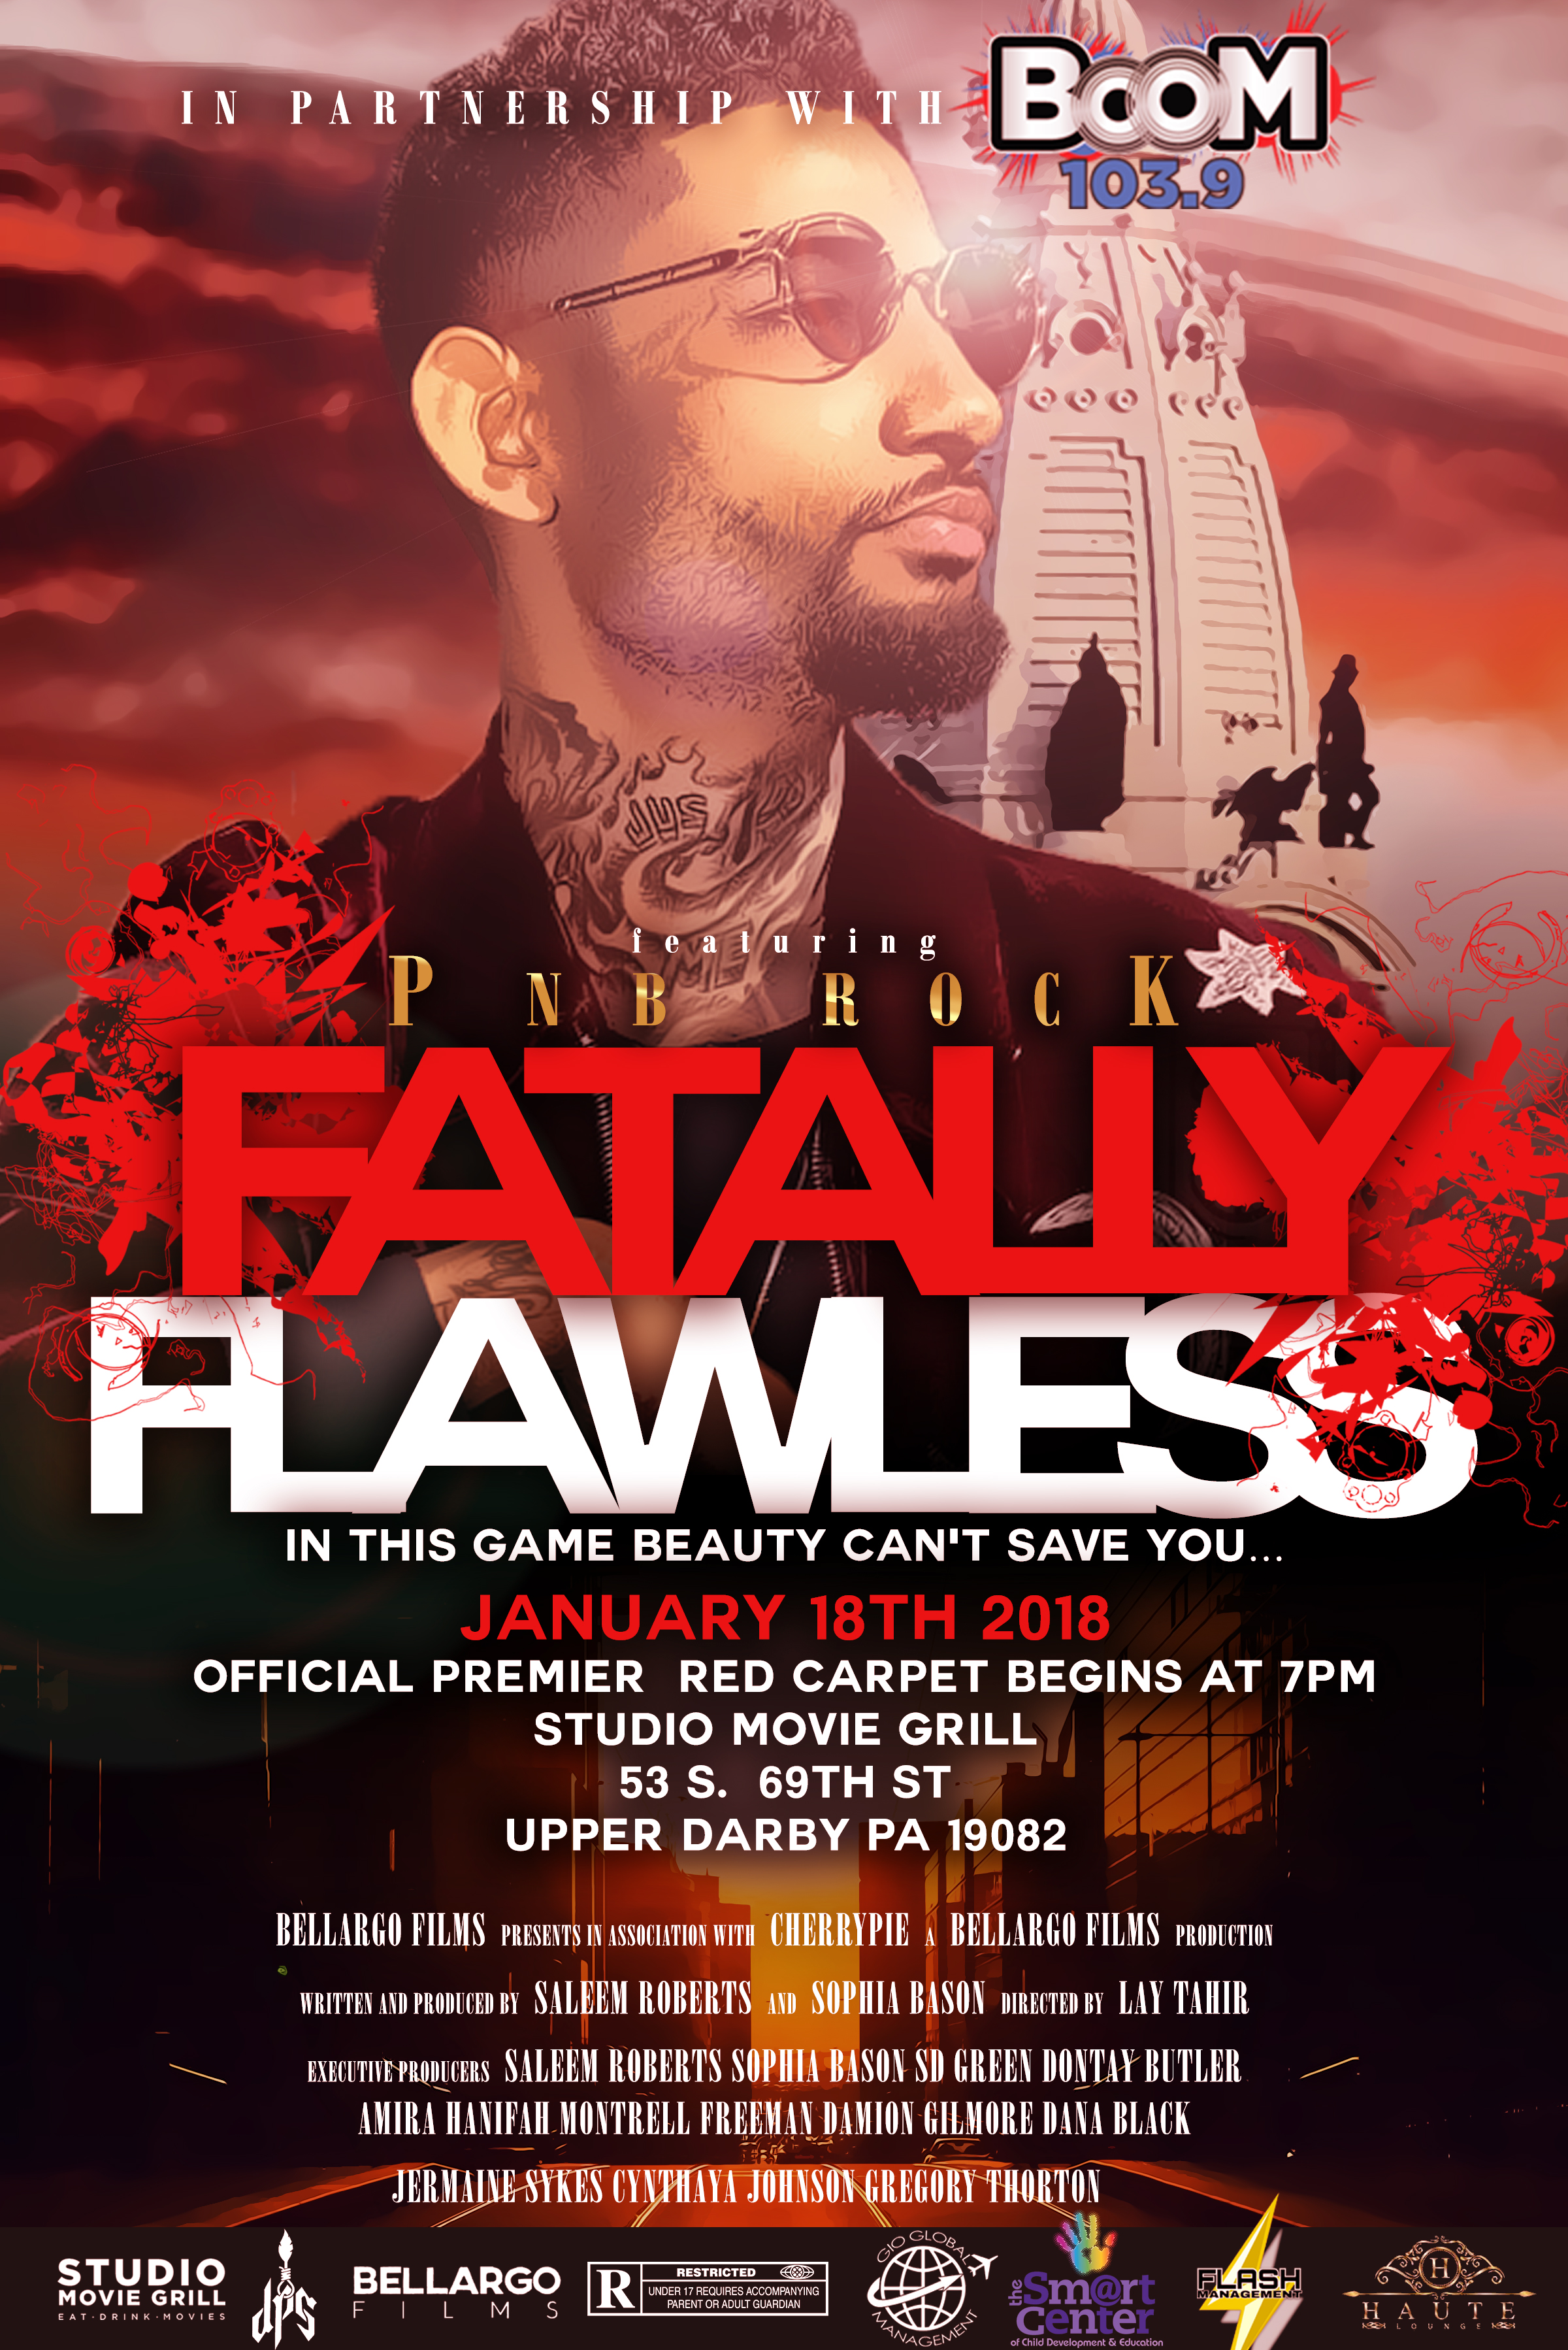 Fatally Flawless event